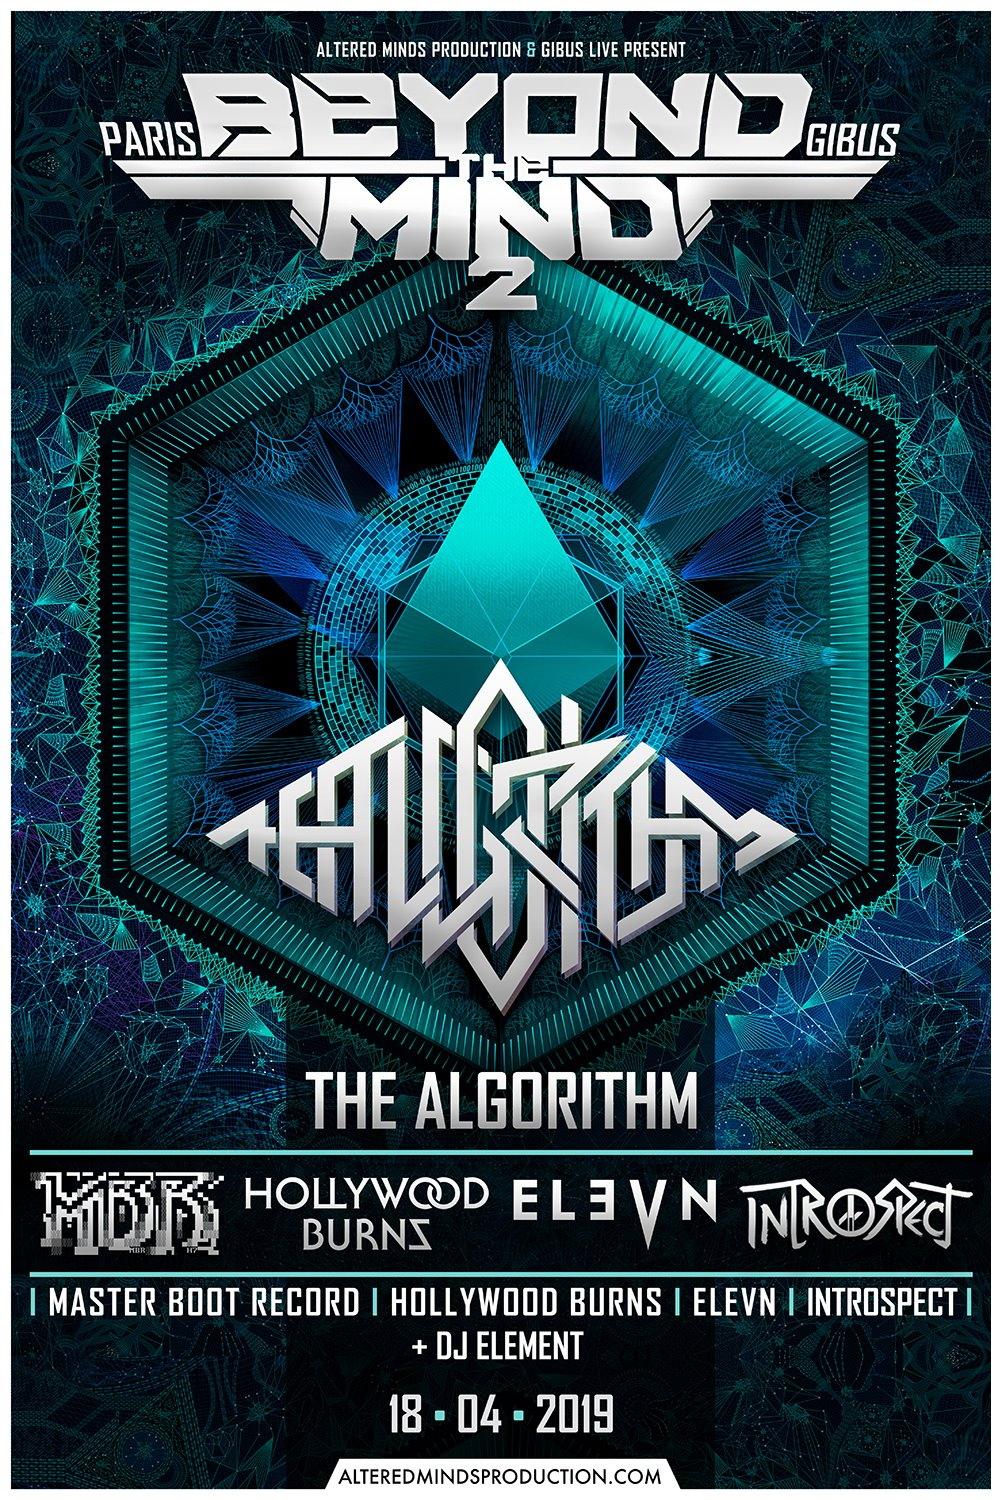 The Algorithm + Elevn + Hollywood Burns + Introspect + Master Boot Record @ Le Gibus (Paris) - 18 avril 2019